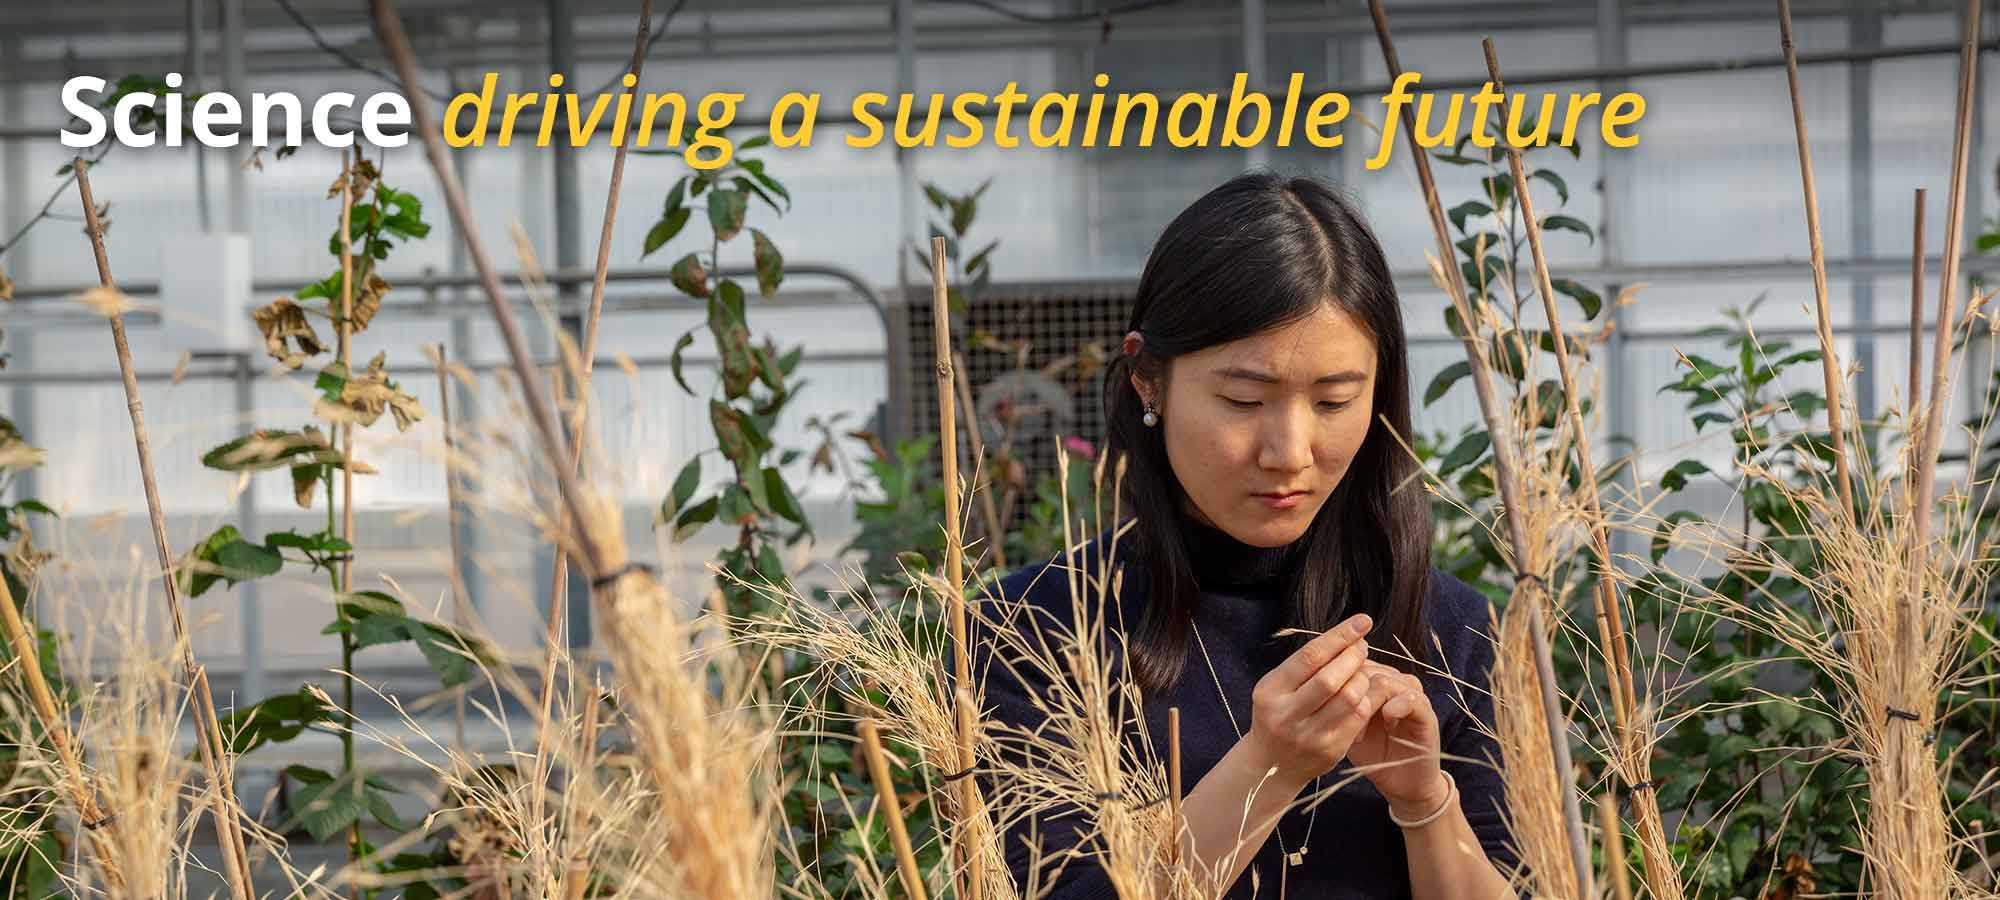 Science driving a sustainable future